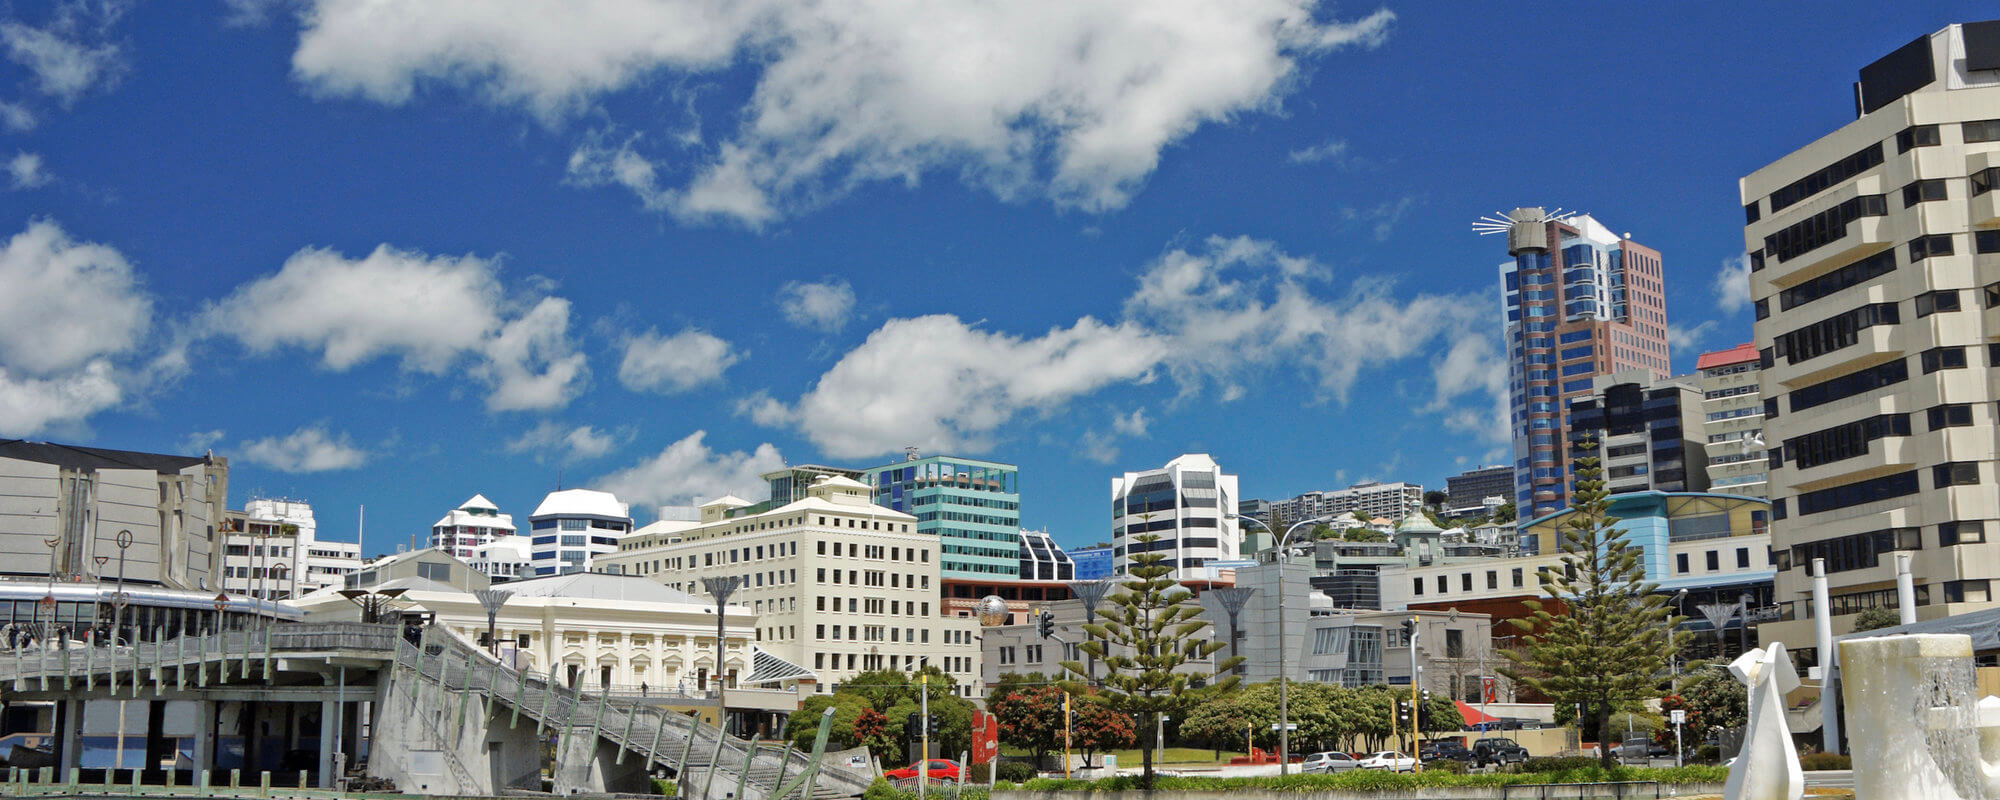 An image of downtown Wellington.